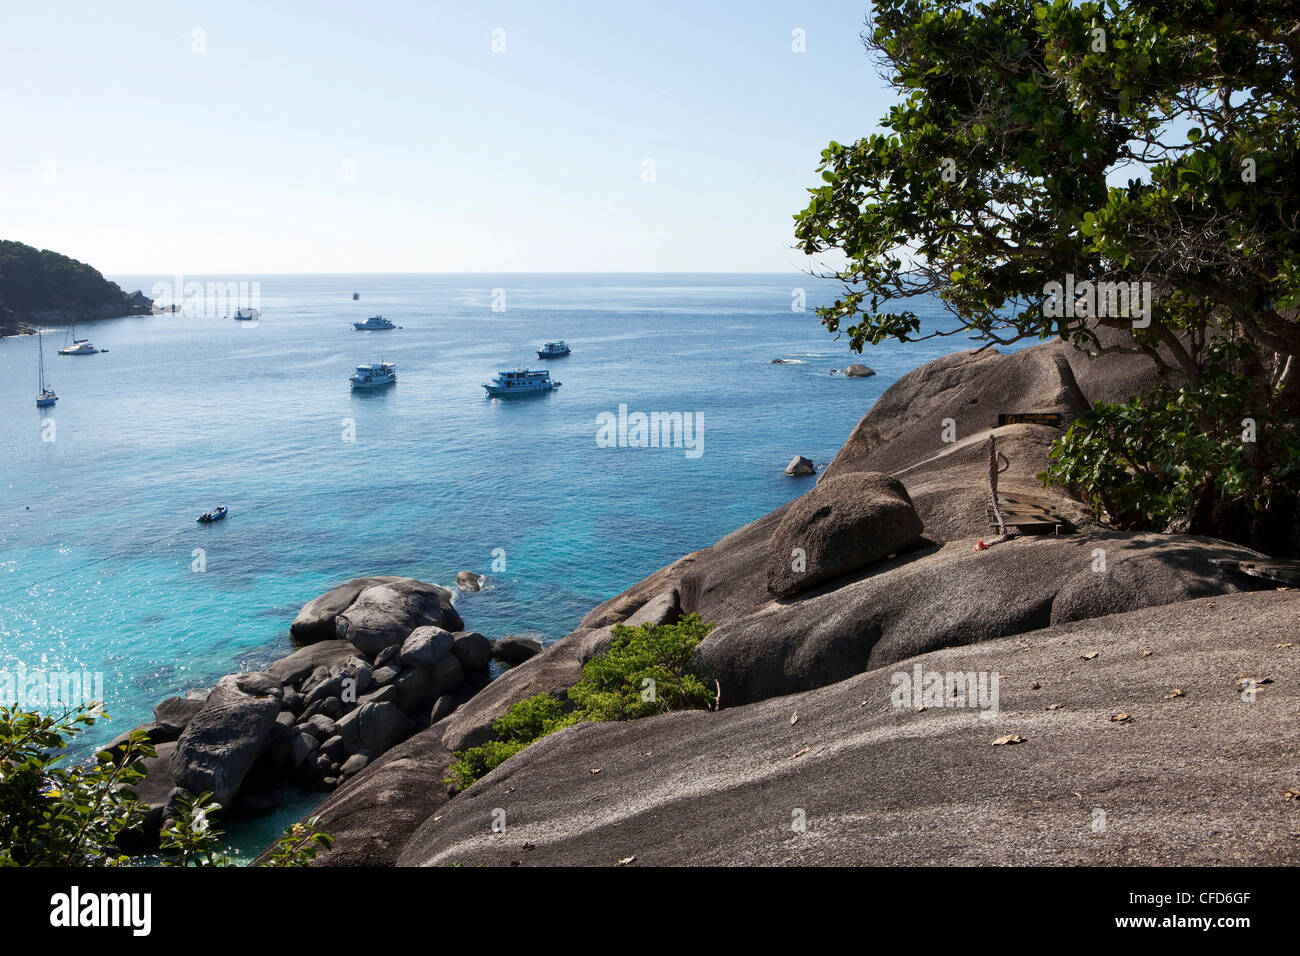 View from the top of Sail Rock down onto the sea with diving boats, Similan Islands, Andaman Sea, Thailand - Stock Image